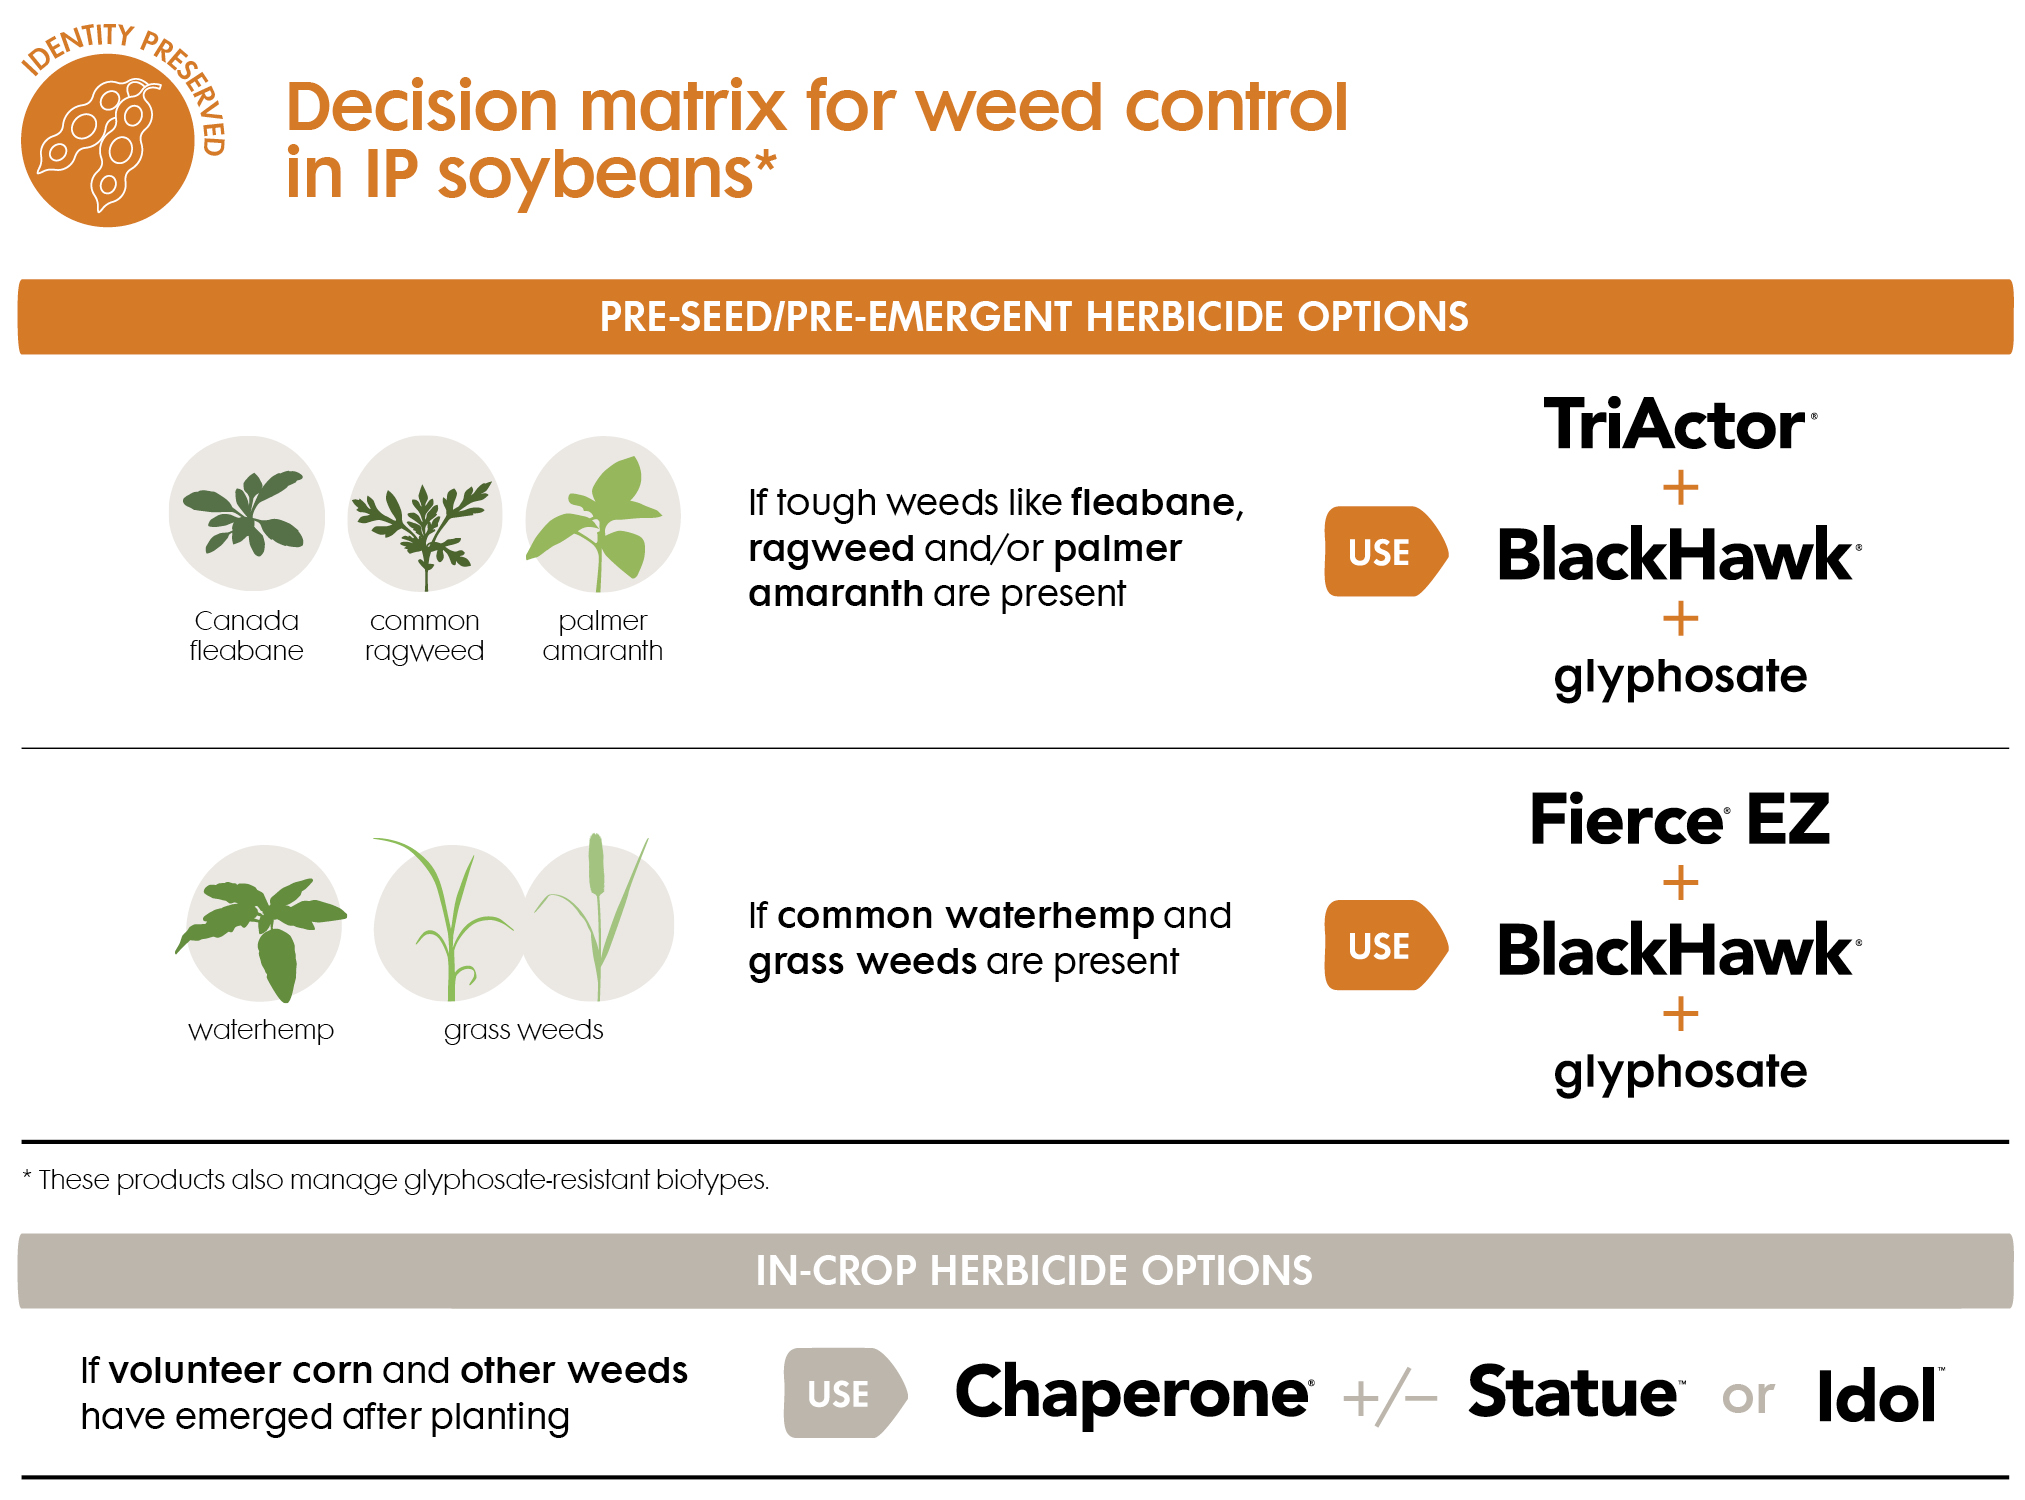 IP-soybean-weed-control-herbicides